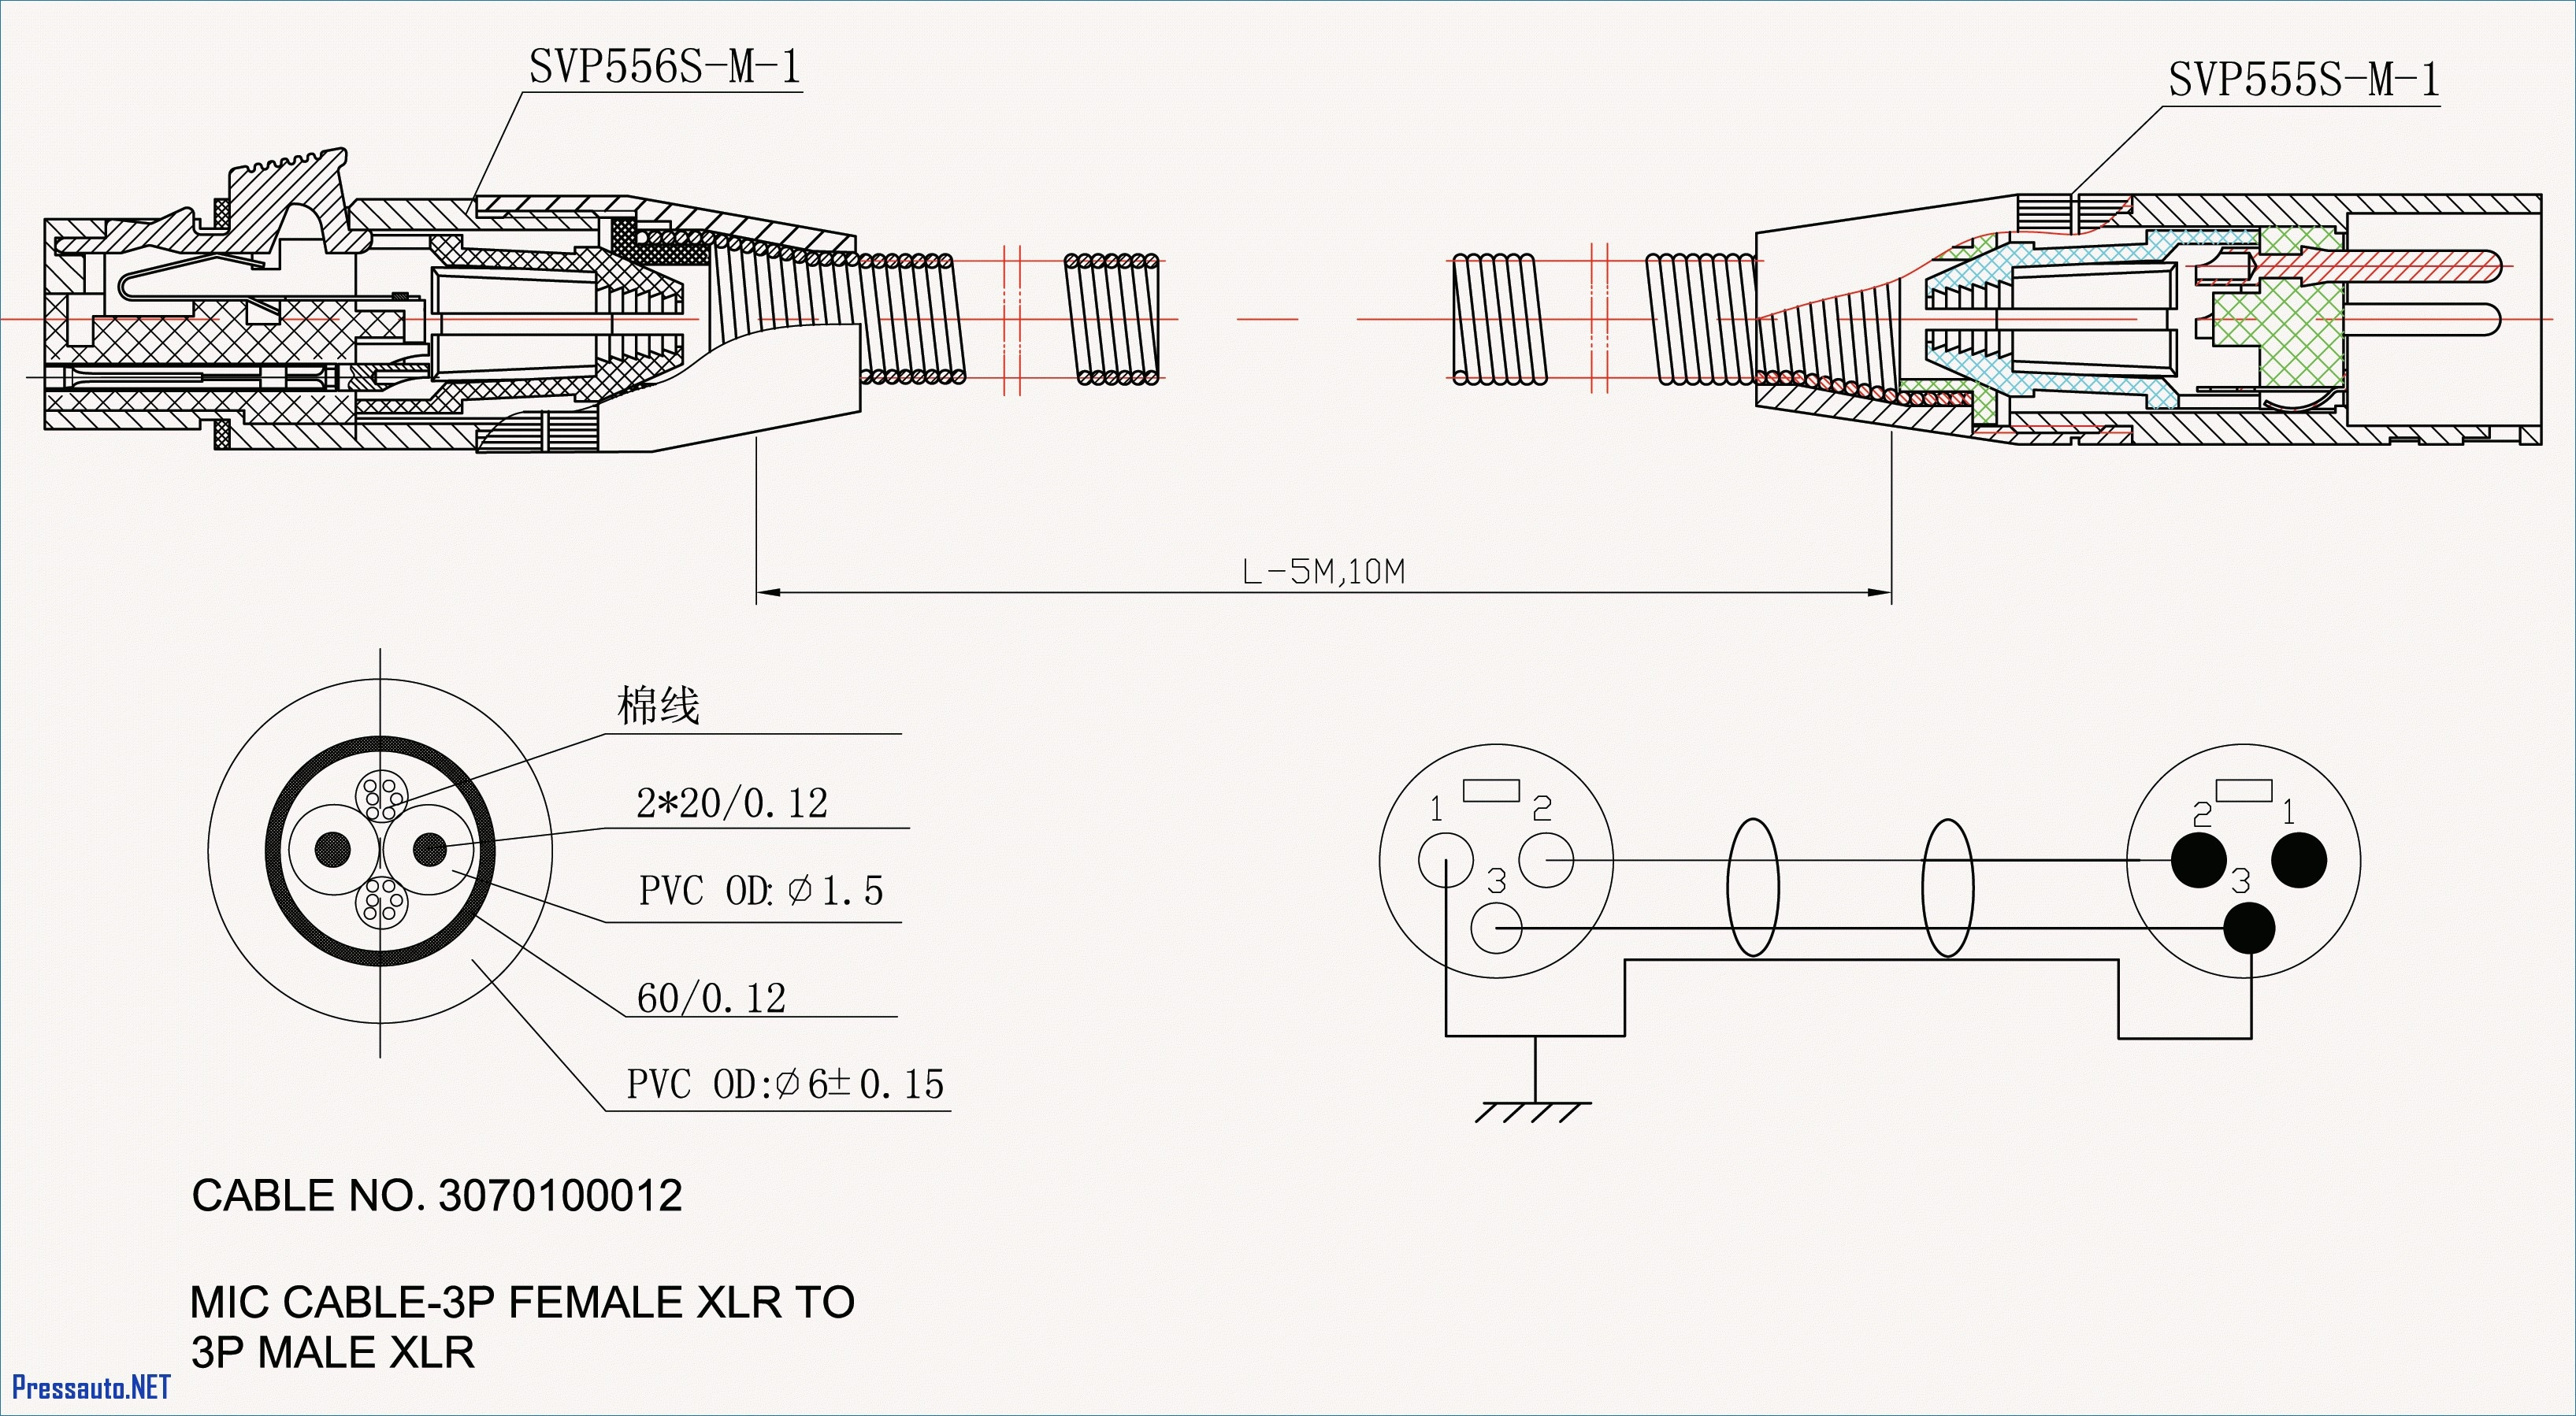 data link connector wiring diagram Collection-data link connector wiring diagram Download 3 Wire Alternator Wiring Diagram Chevy Inspirationa Mic 3 19-k